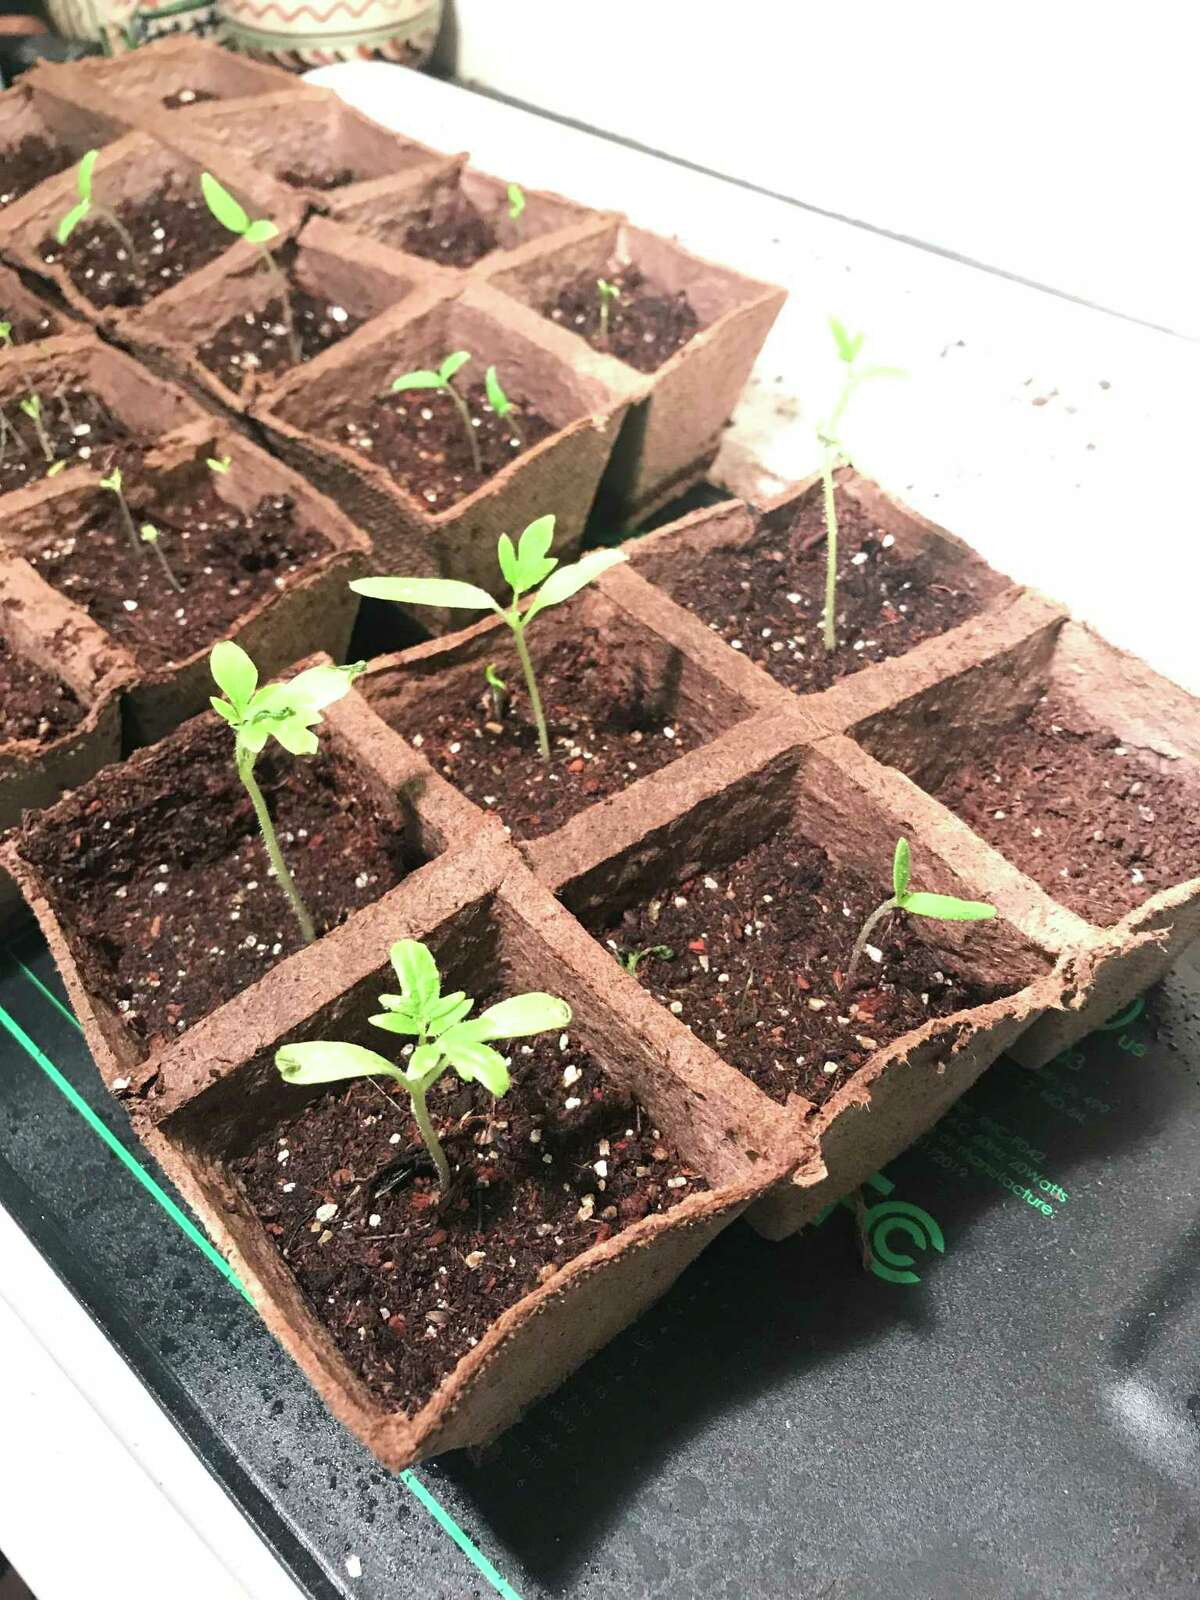 Writer and home gardener Andrea Valluzzo prepares tomato, lettuce, and pepper seedlings for the coming growing season.